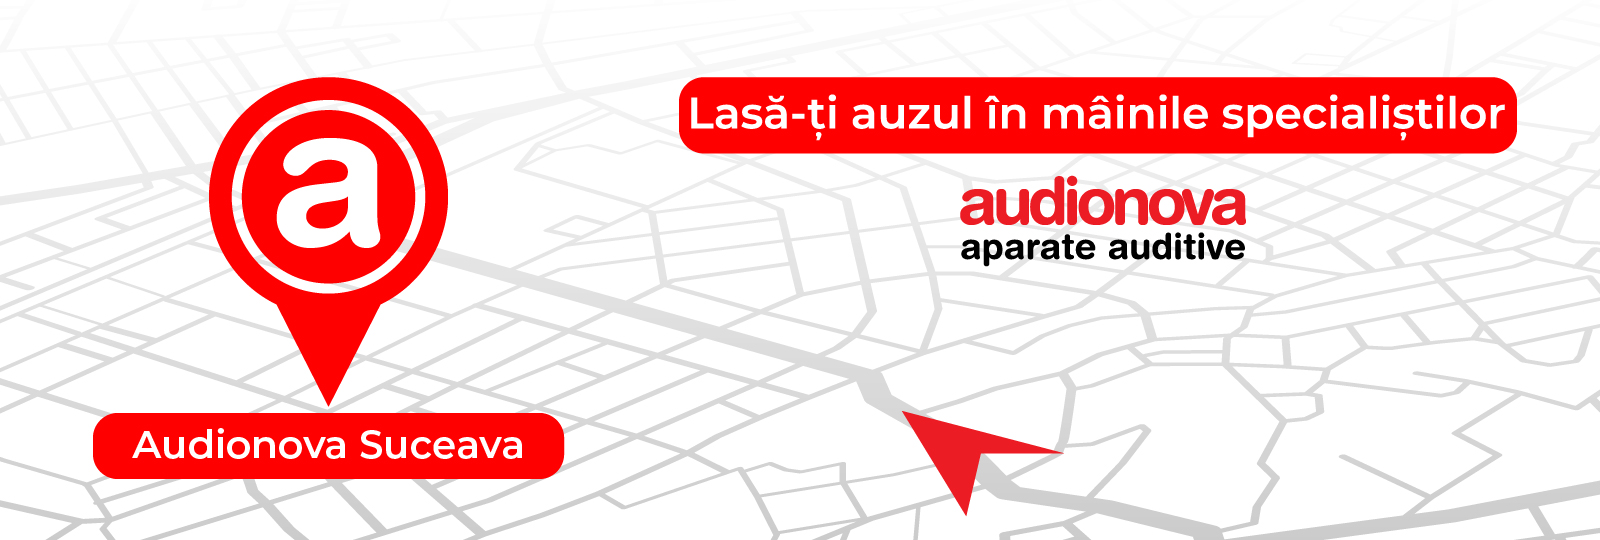 aparate auditive suceava